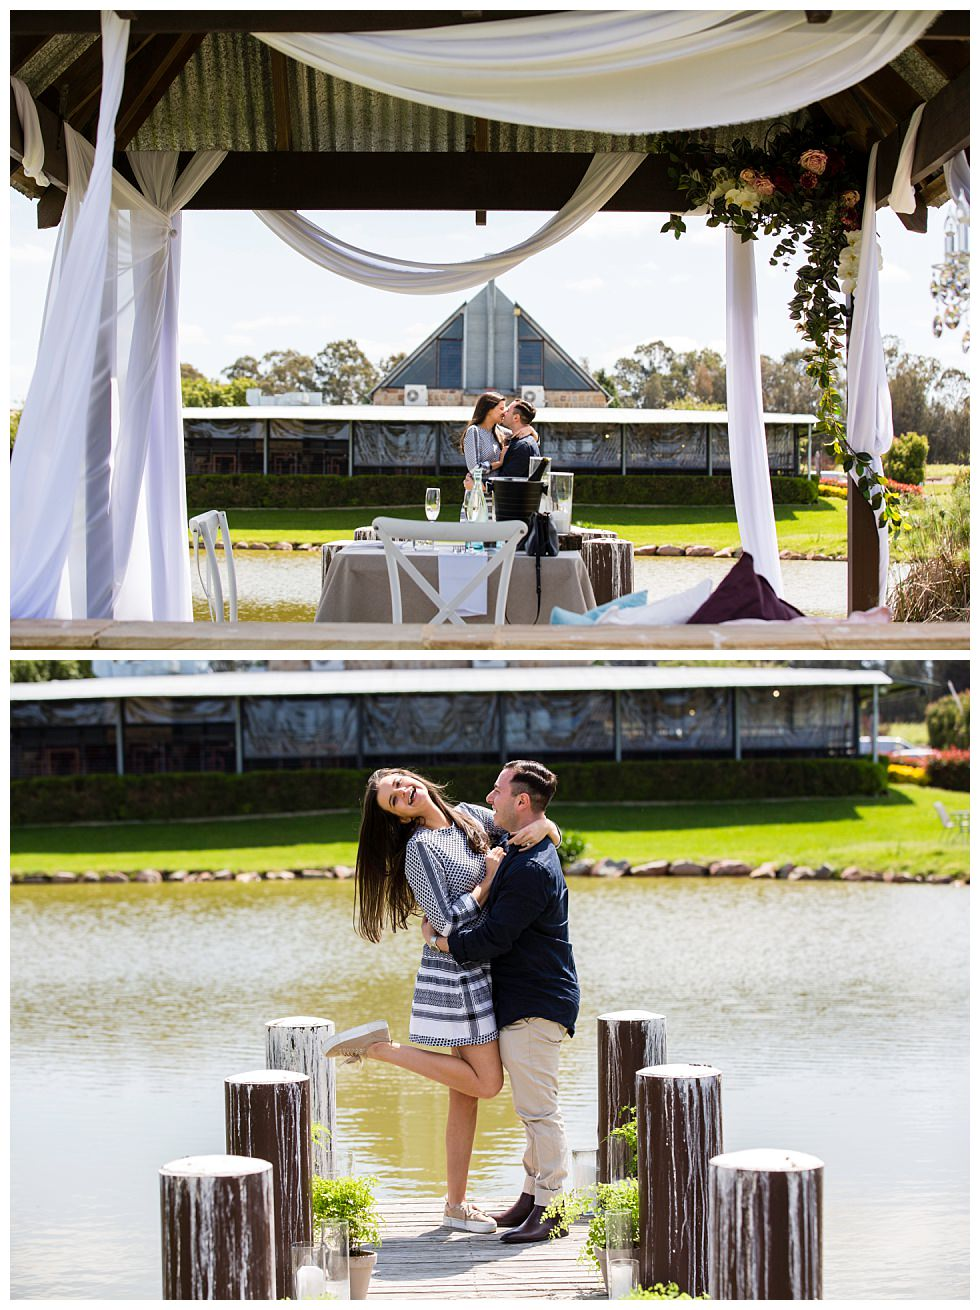 ArtyJ Photography | My Proposal Co., Spring Proposal, Peterson House, Pokolbin, Australia, NSW, Hunter Valley, Engagement, Photography | Hannah & Chris | Proposal